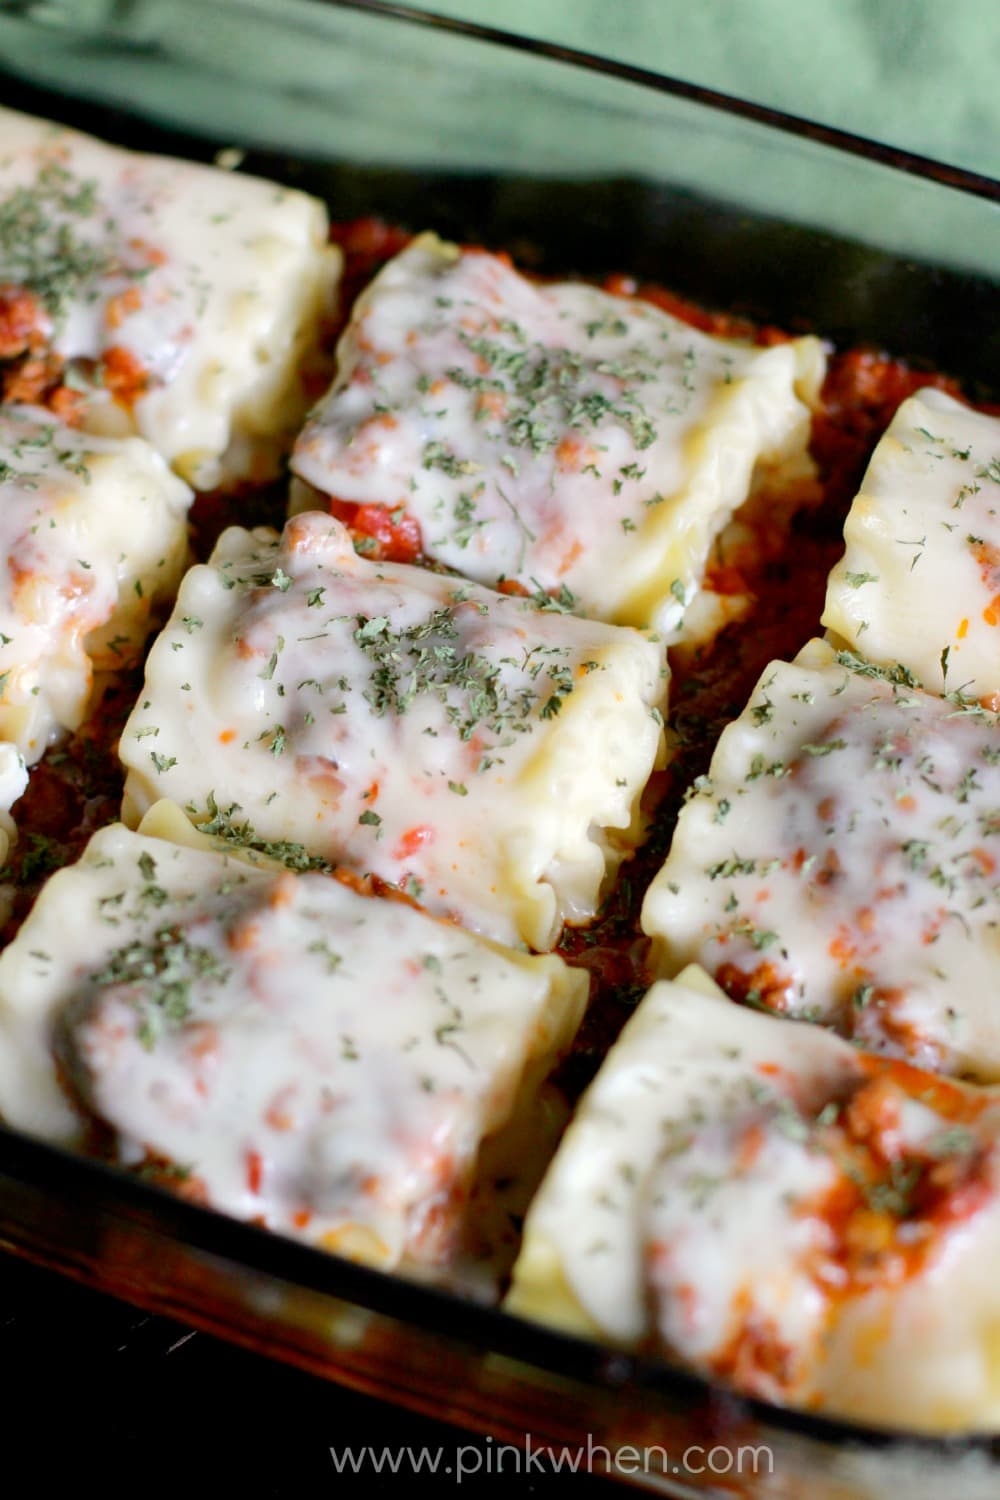 Fully cooked lasagna rolls in a baking dish.